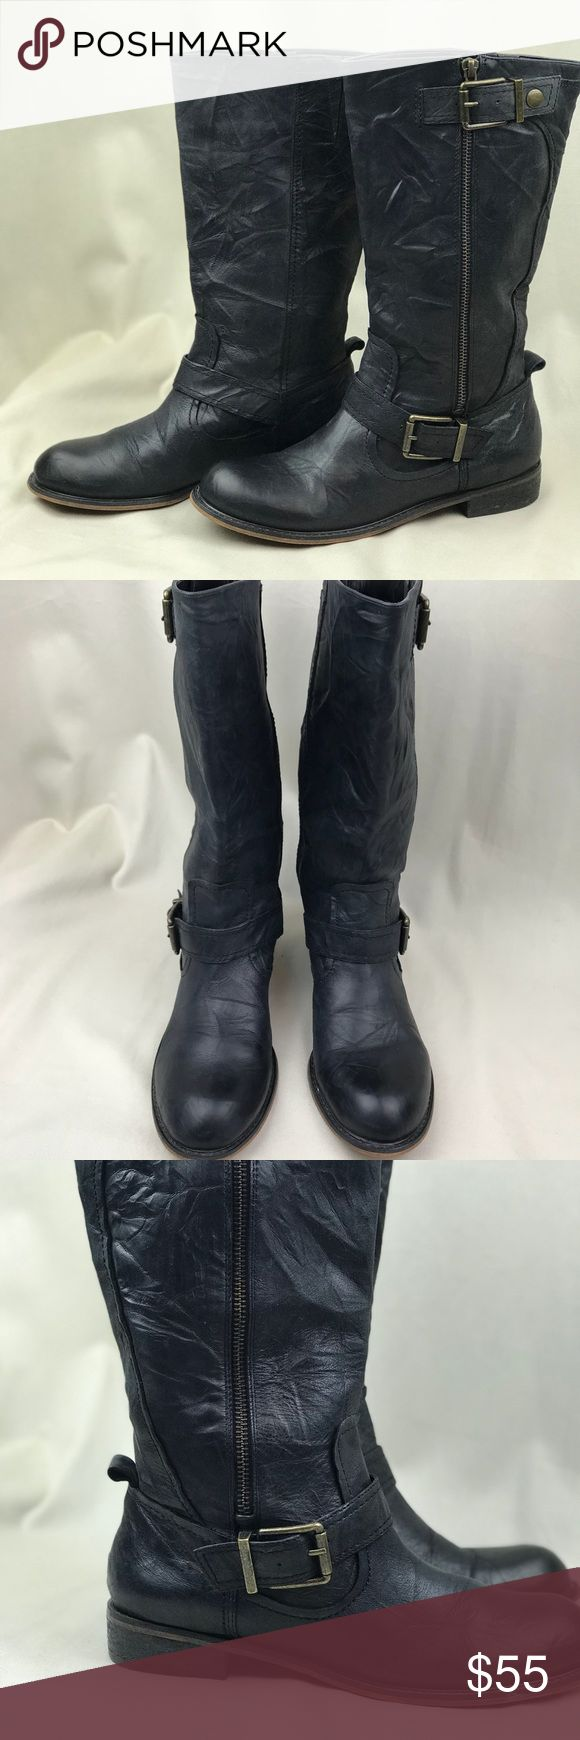 Gianni Bini  Calf Leather Boots Size 7M Pre-owned Very good pre-owned condition. Slight scuffing on heels and toes from normal wear. See pics. Clean inside. 1-inch heels. Gianni Bini Shoes Combat & Moto Boots